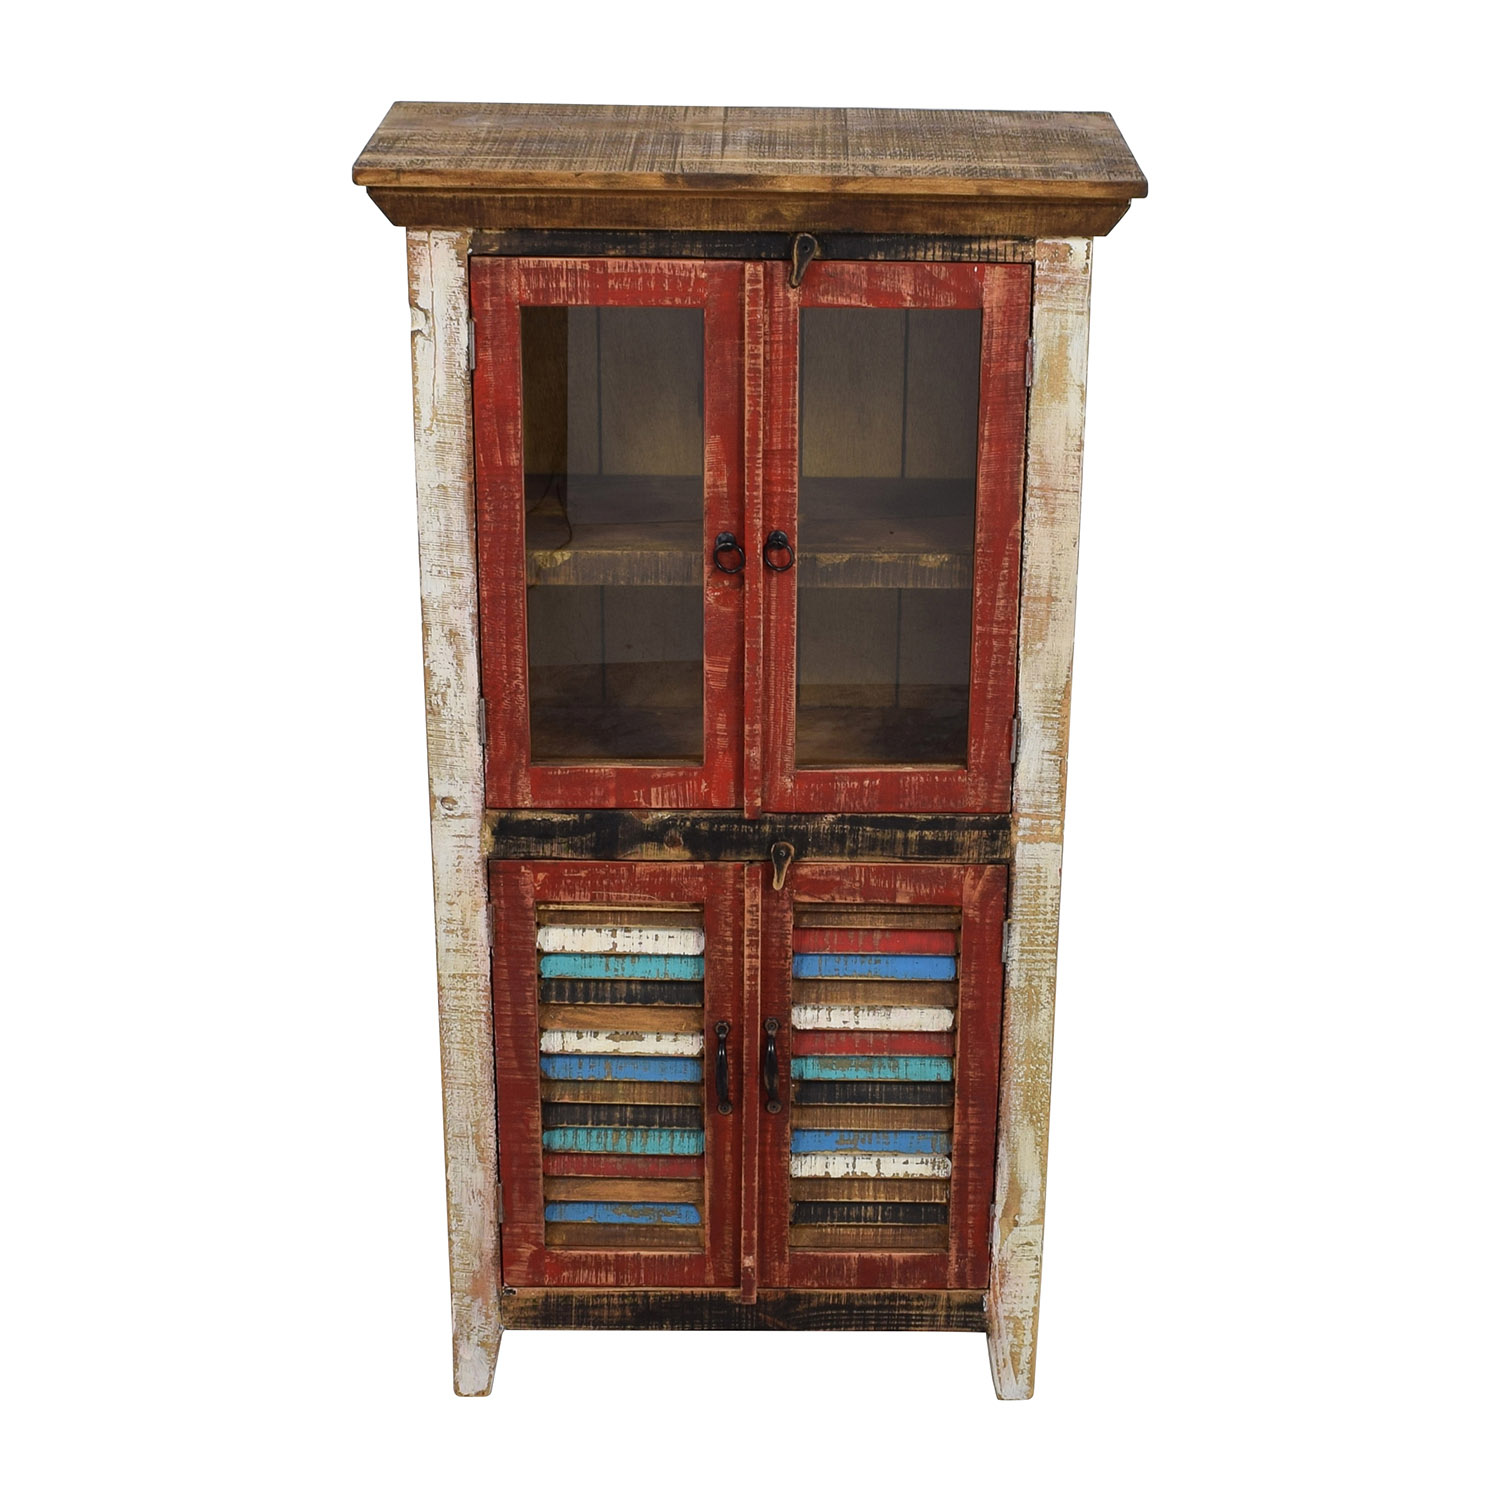 Antique Rustic Glass and Wood Cabinet / Cabinets & Sideboards